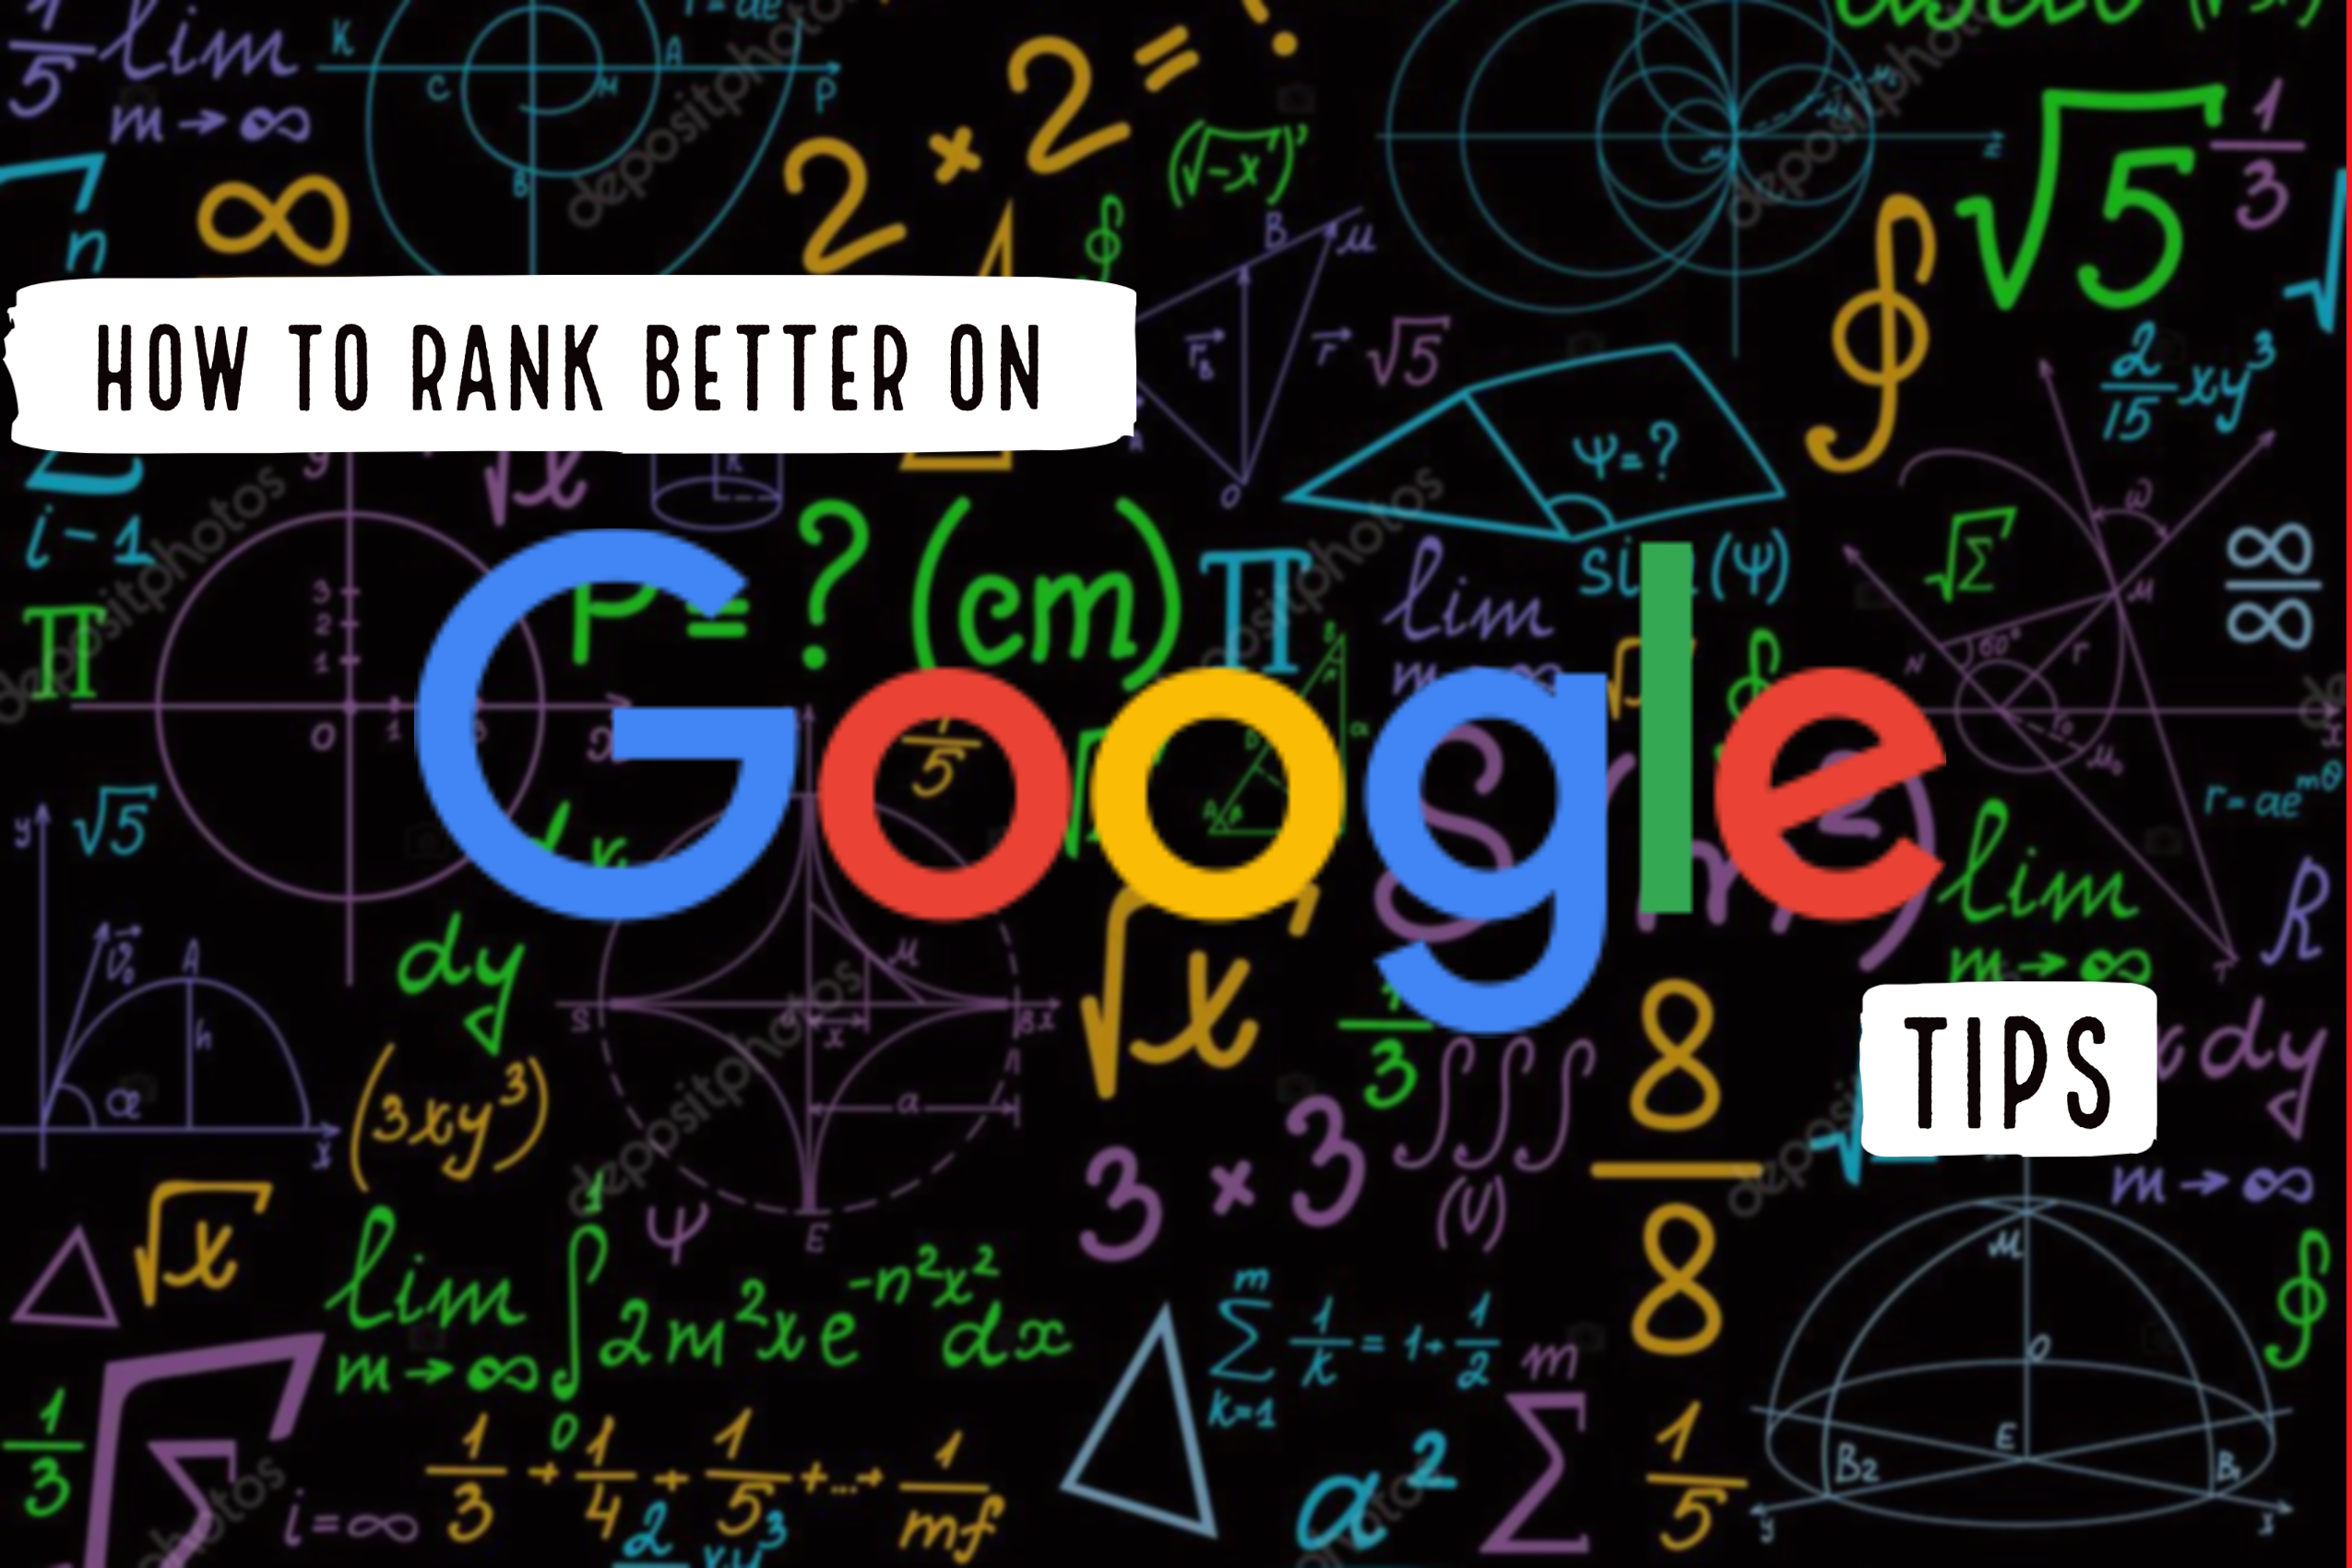 How To Rank Better On Google 2020 Tips